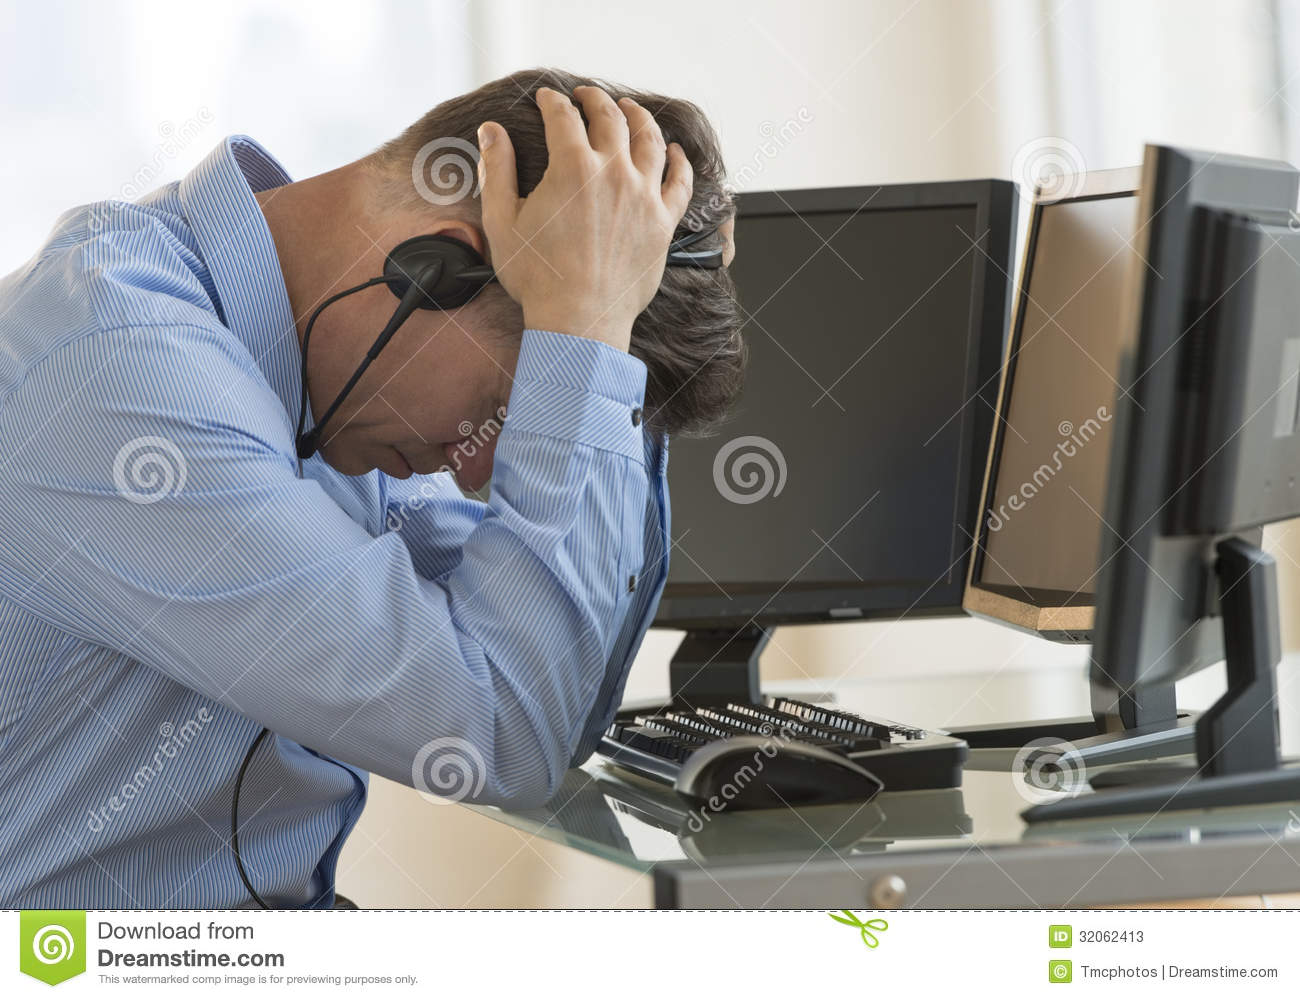 Exhausted Trader With Head In Hands Leaning At Computer Desk Stock